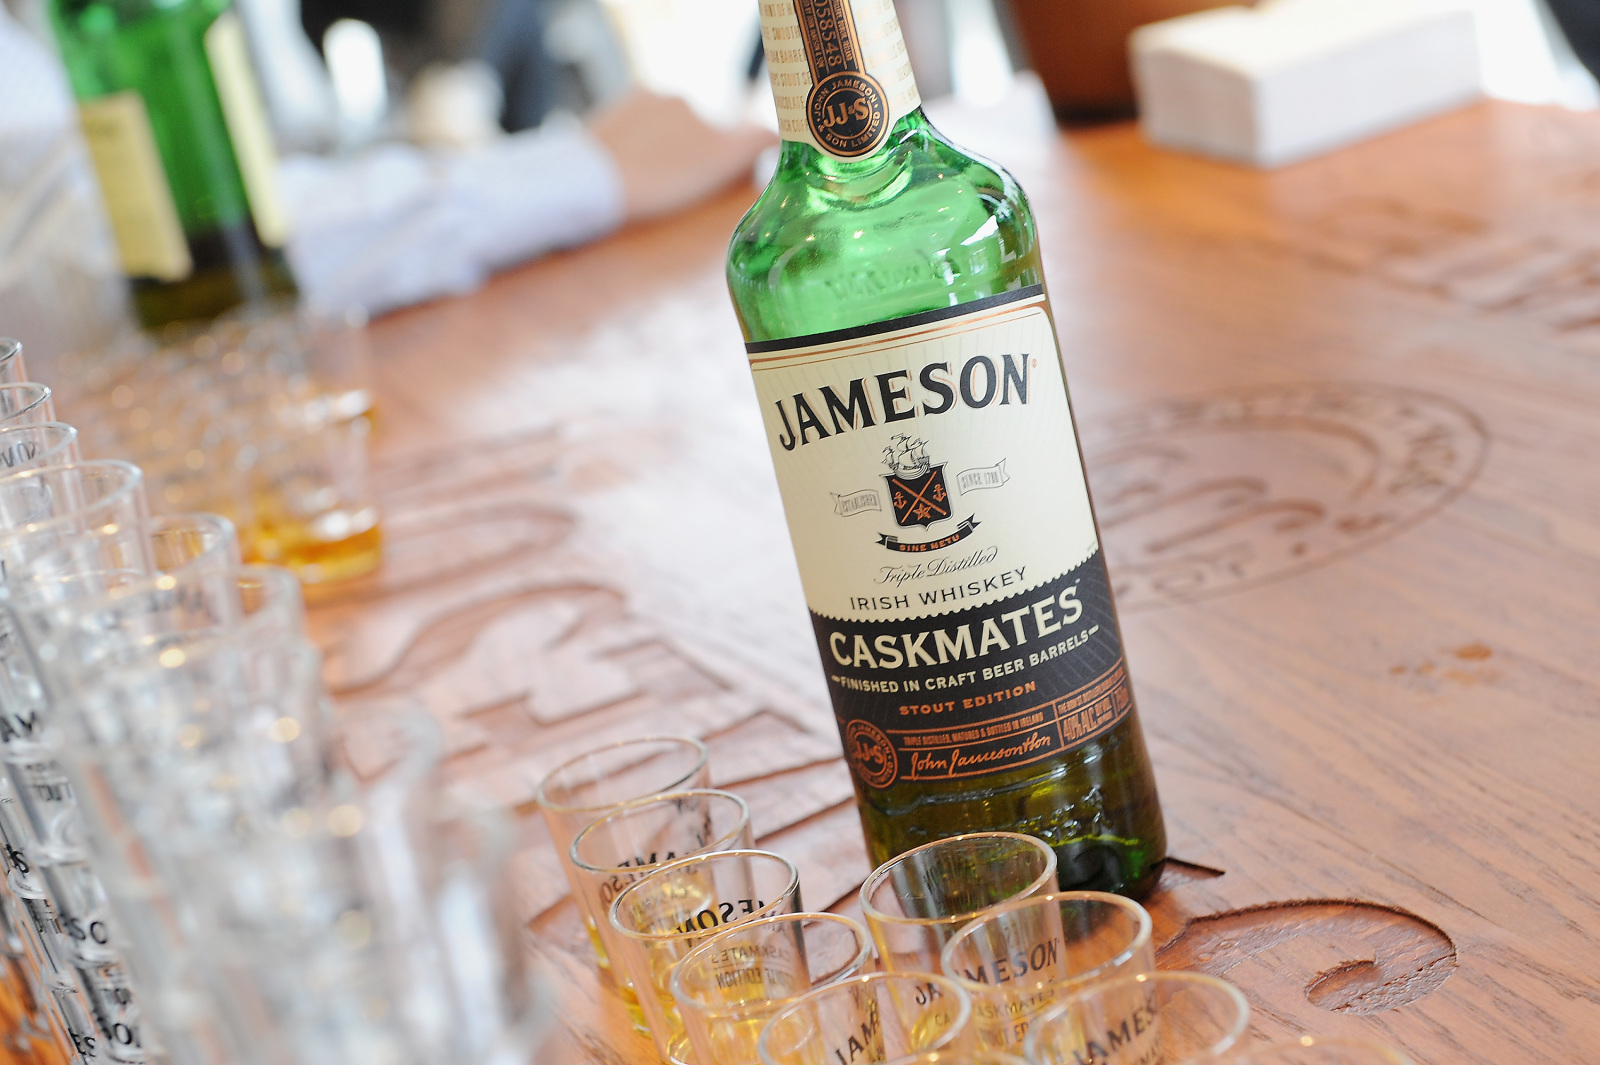 Guinness, Jameson Irish Whiskey St. Patrick's Day Charitable Moments photo